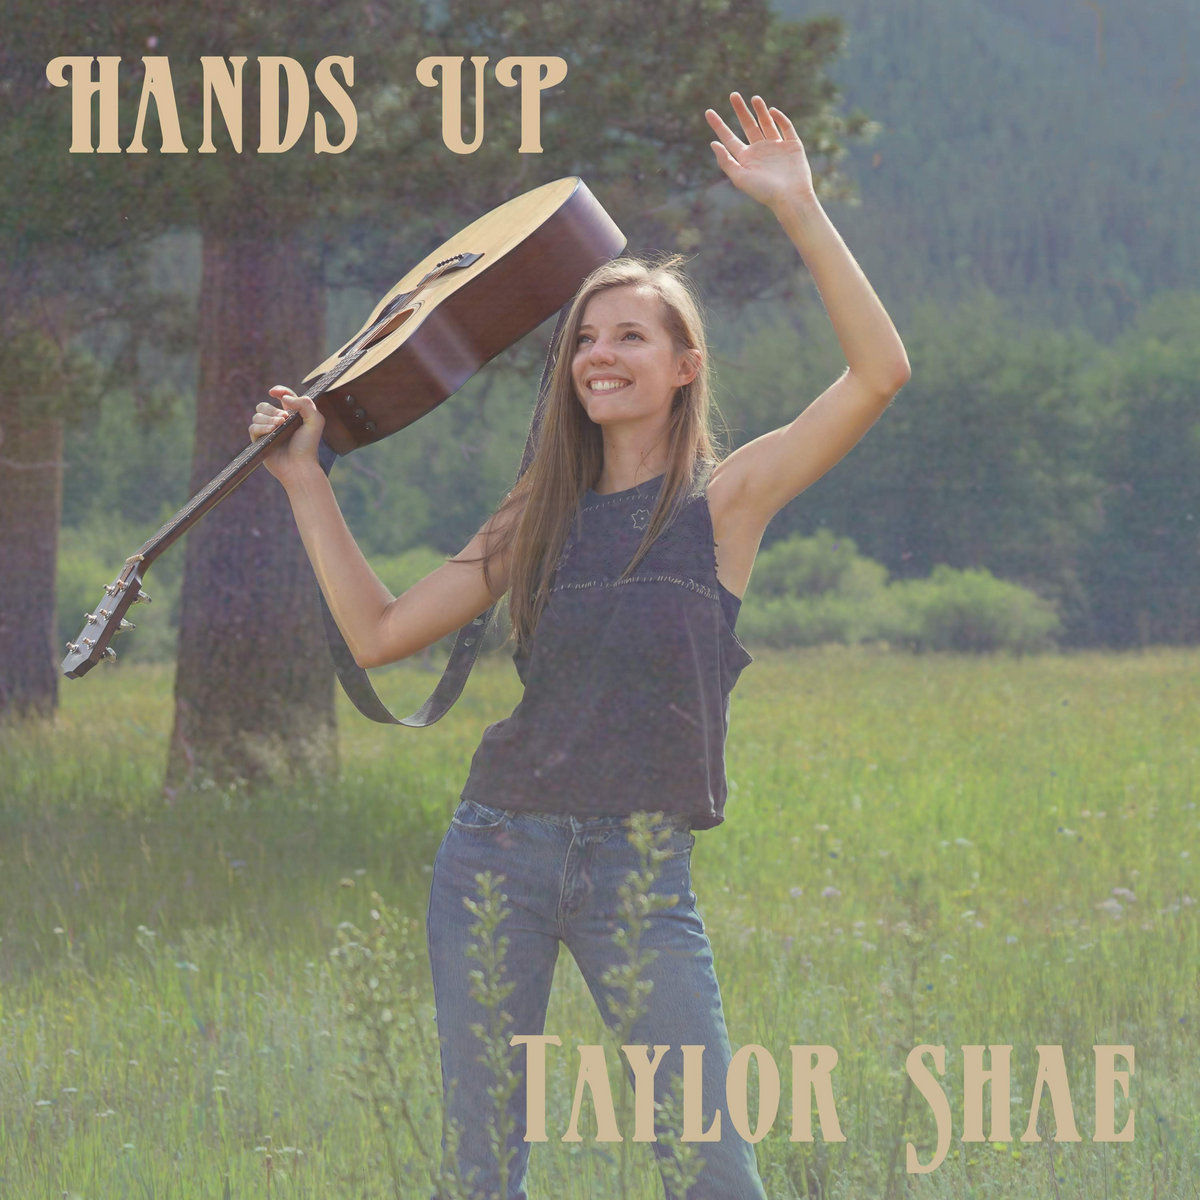 Hands Up by Taylor Shae